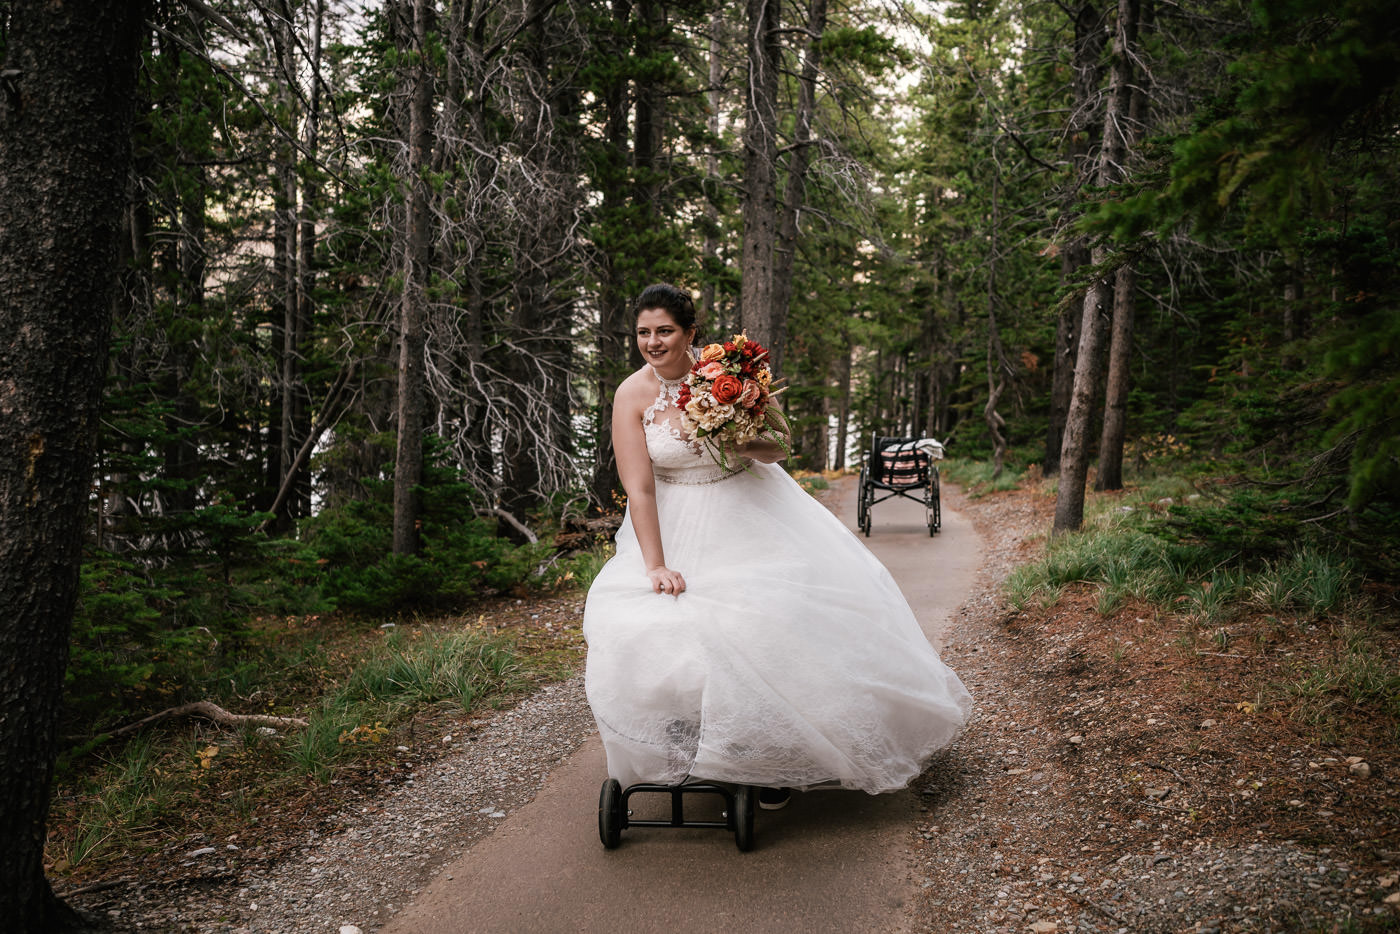 Bride walks herself down the aisle at her Glacier elopement despite having a broken leg.